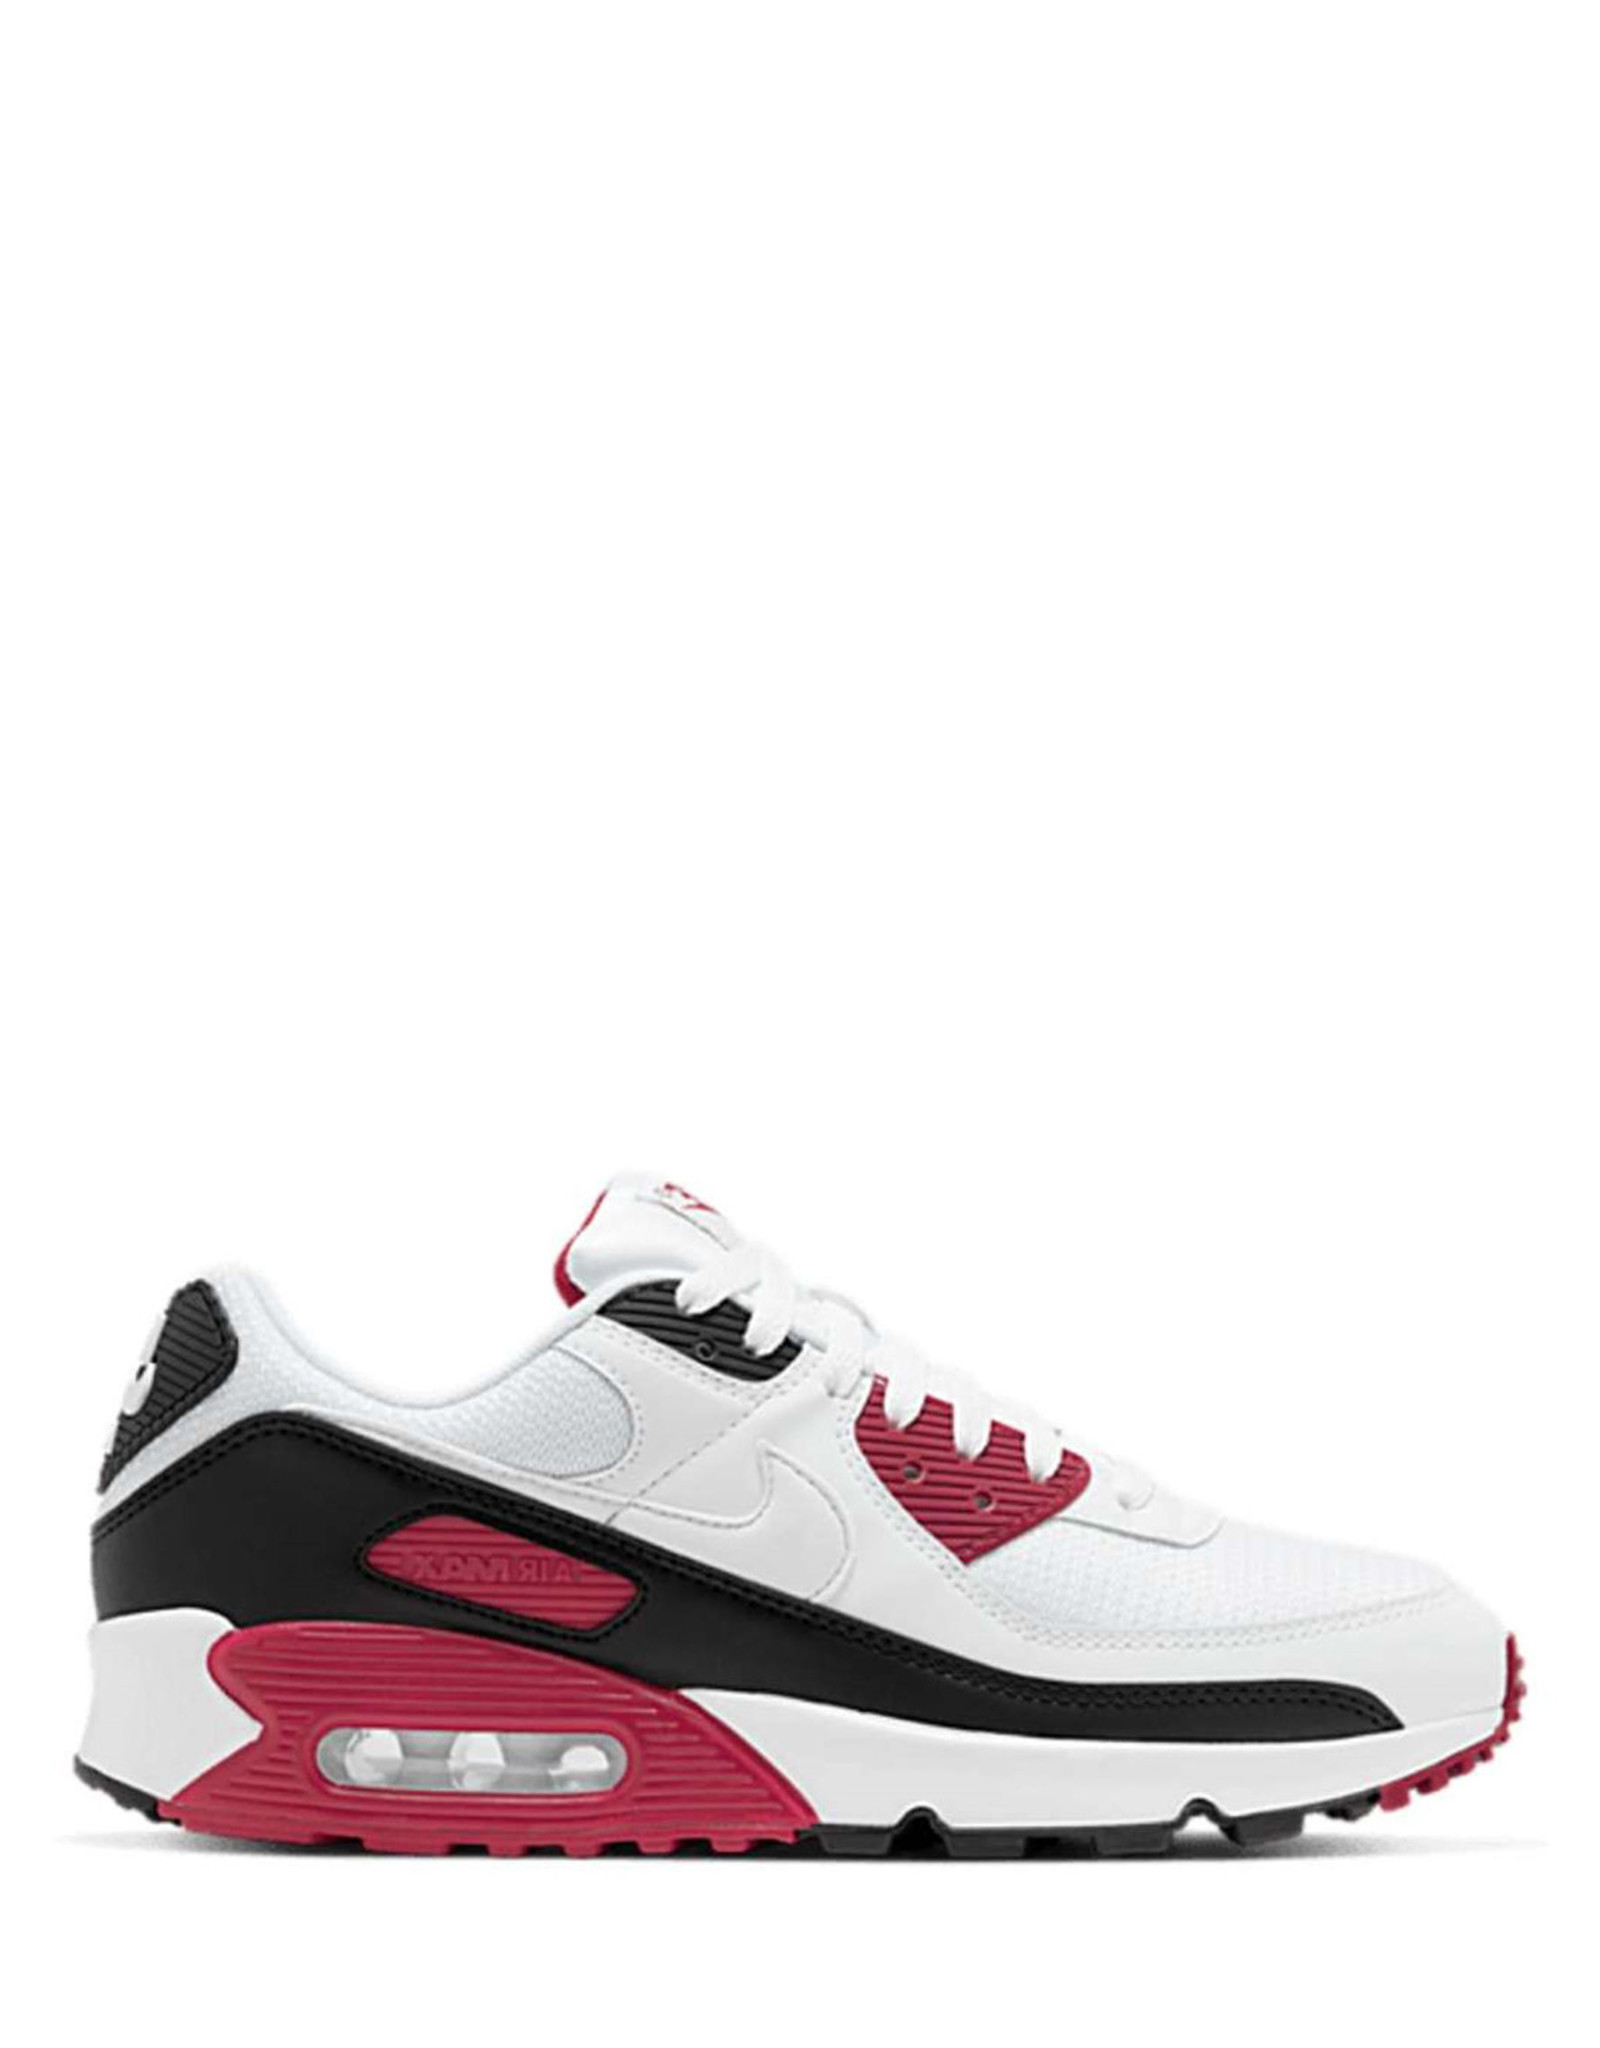 NIKE AIR MAX 90 NEW MAROON